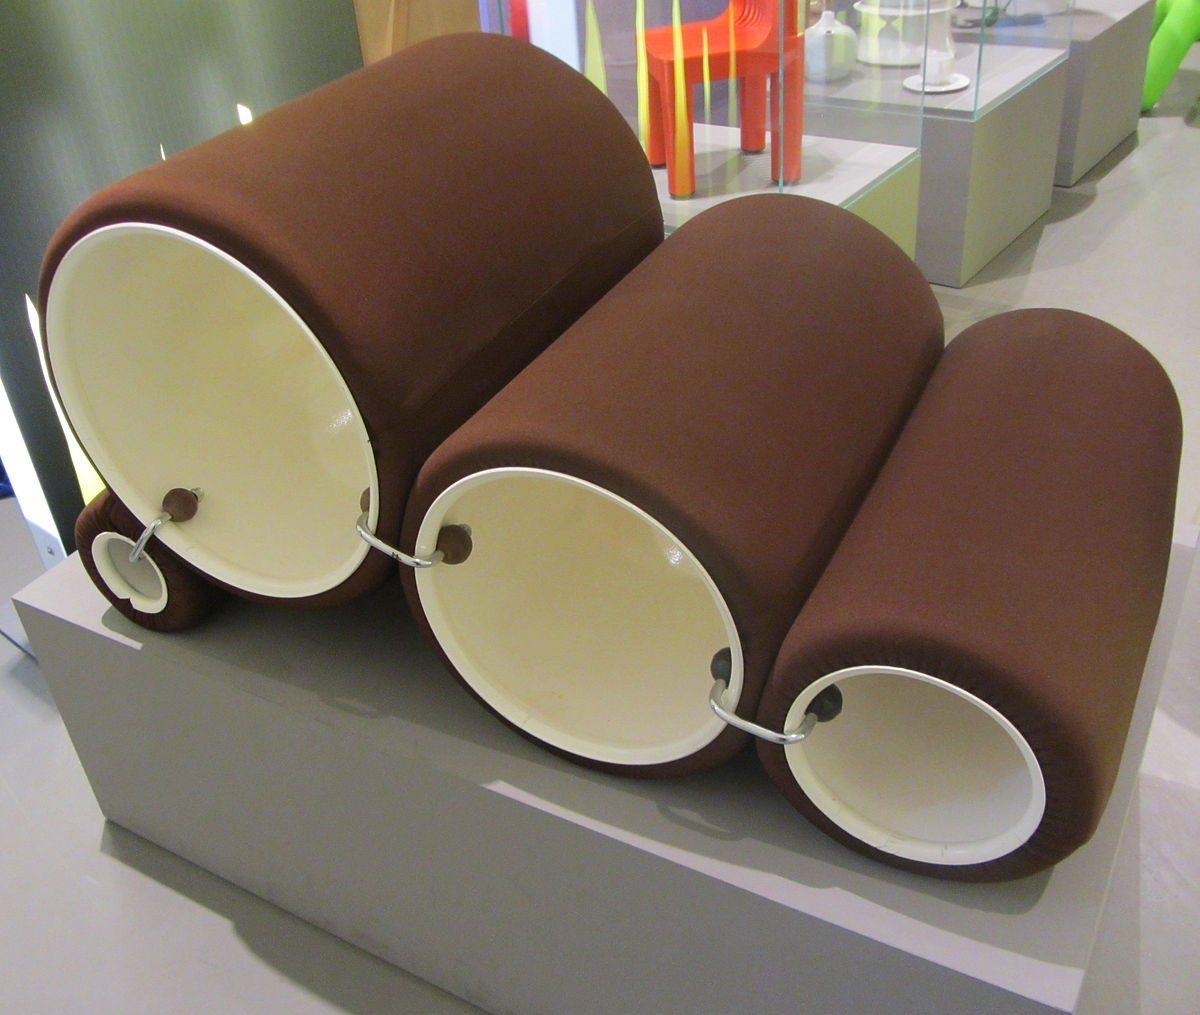 Tube chair wikipedia for Colombo design spa